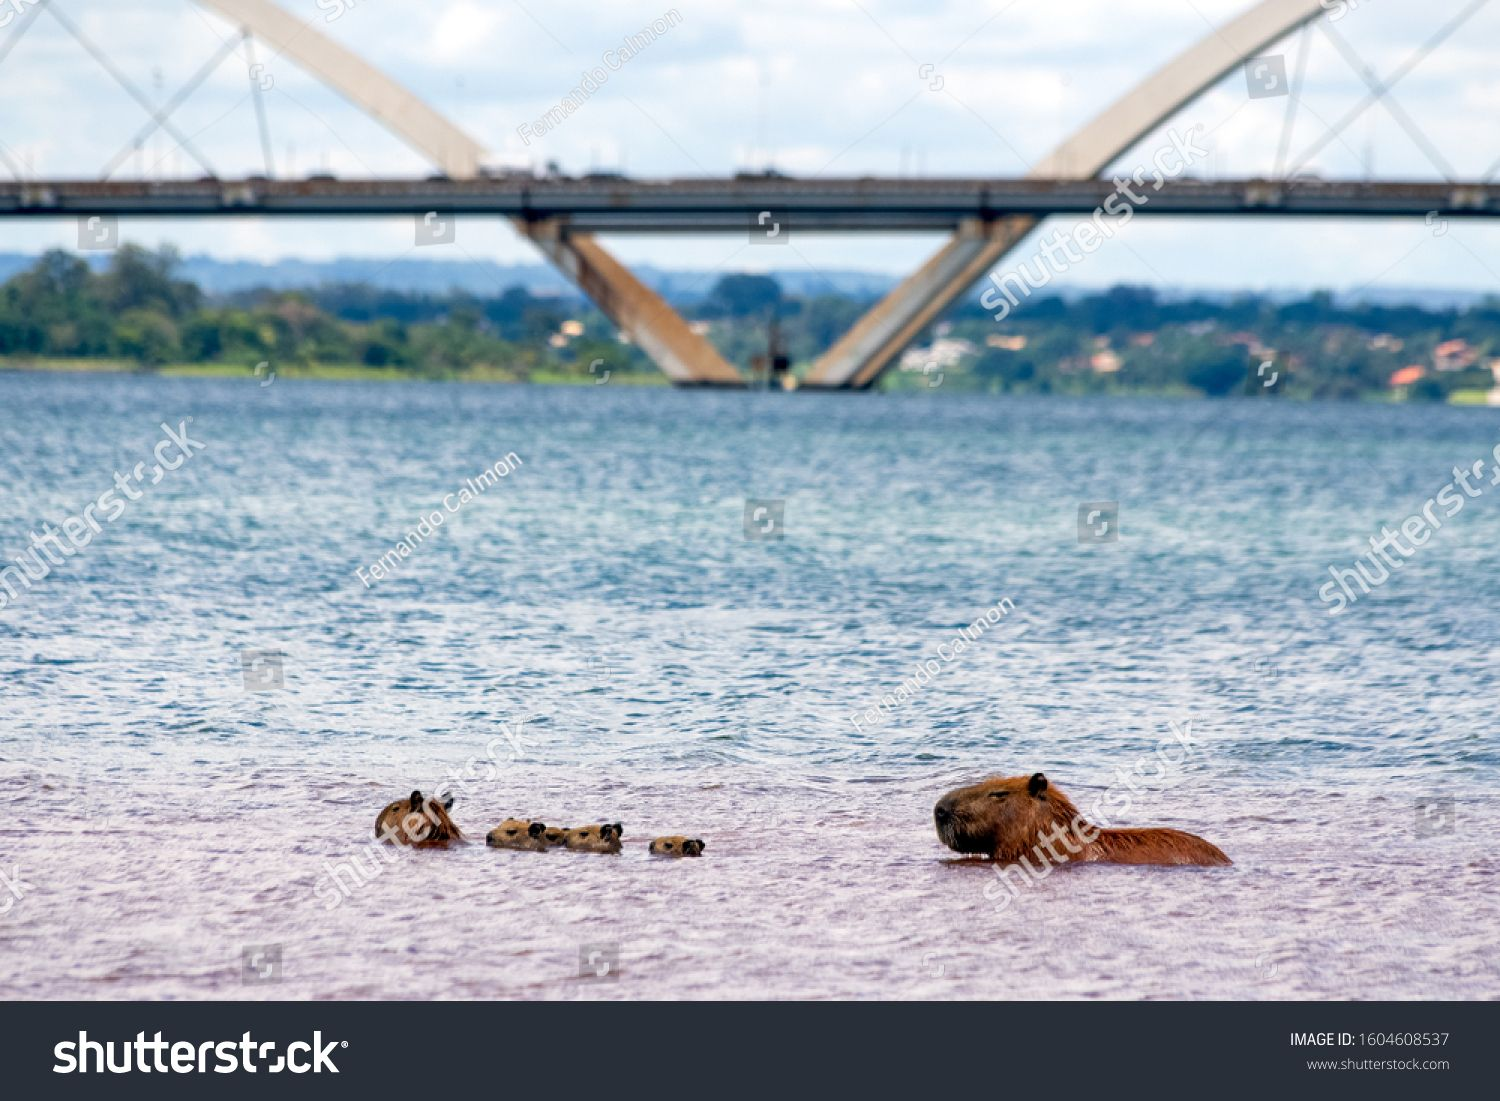 Two capybaras and their young swimming in front of JK Bridge in Parano¨¢ Lake in Brasilia, Brazil. The capybara is the largest rodent in the world. Species Hydrochoerus hydrochaeris. Wildlife. Cerrado #Ad , #ad, #Parano#Bridge#Brasilia#Lake